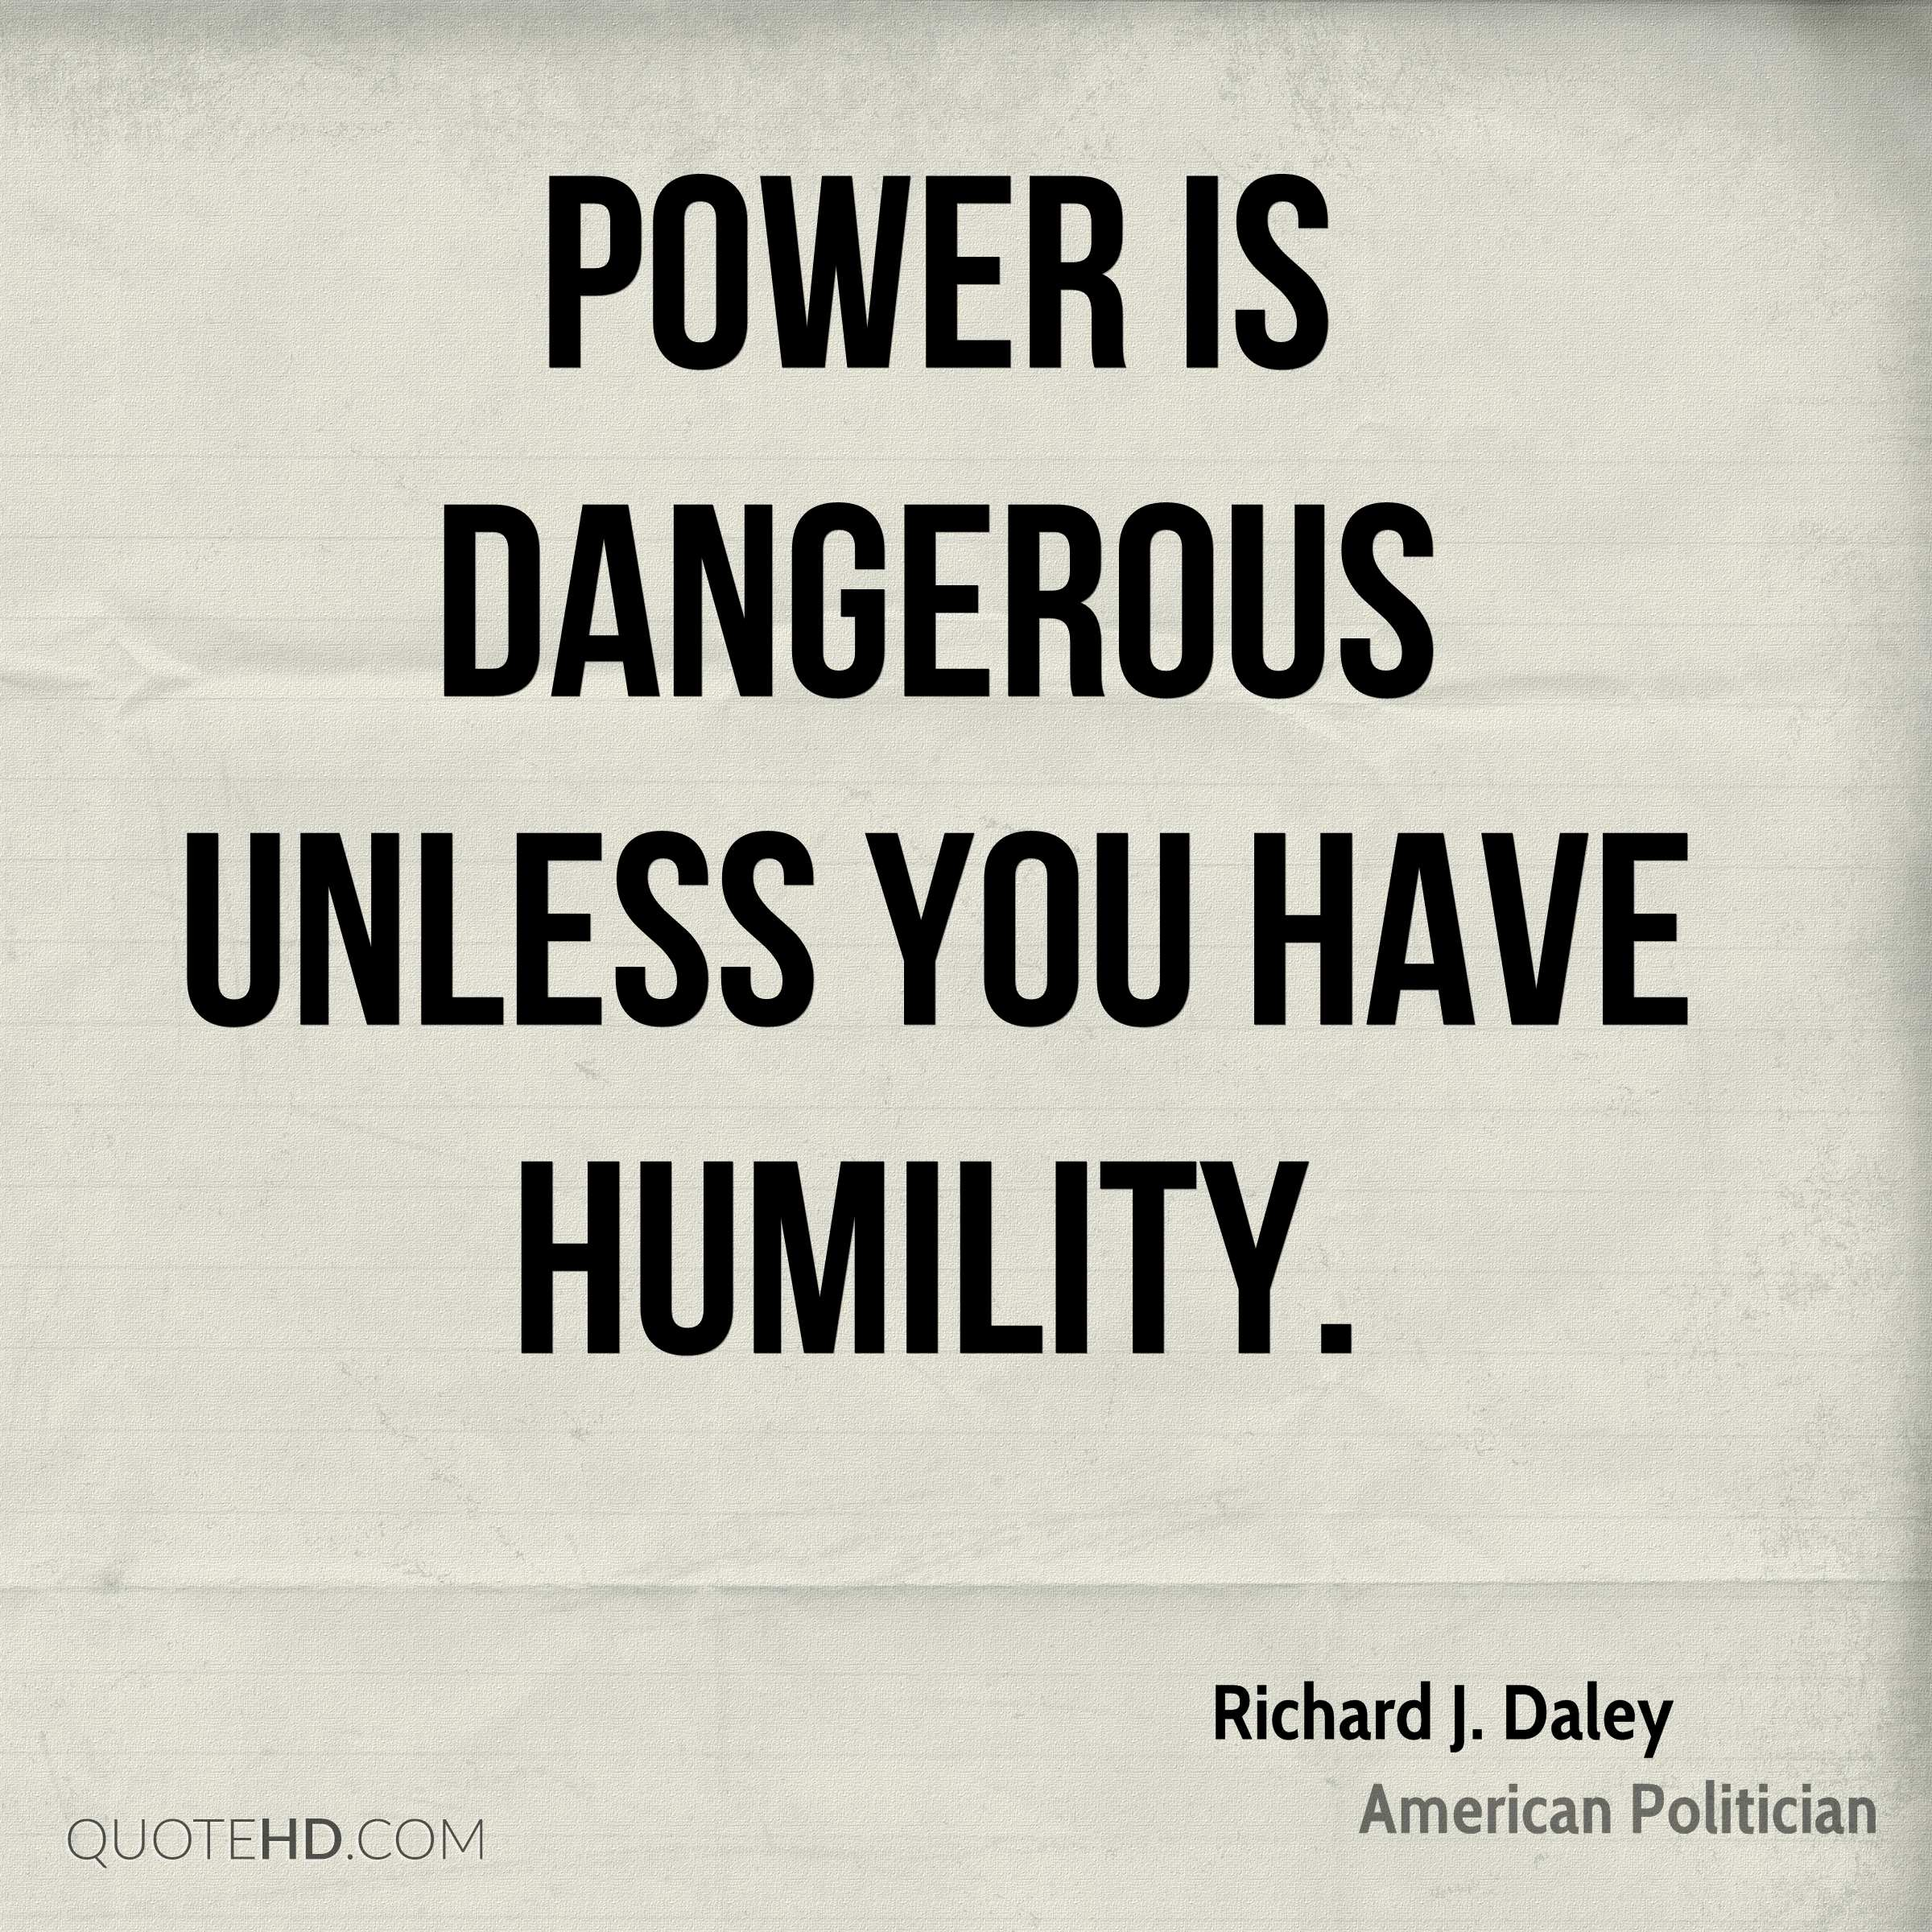 Quotes On Power Richard Jdaley Power Quotes  Quotehd